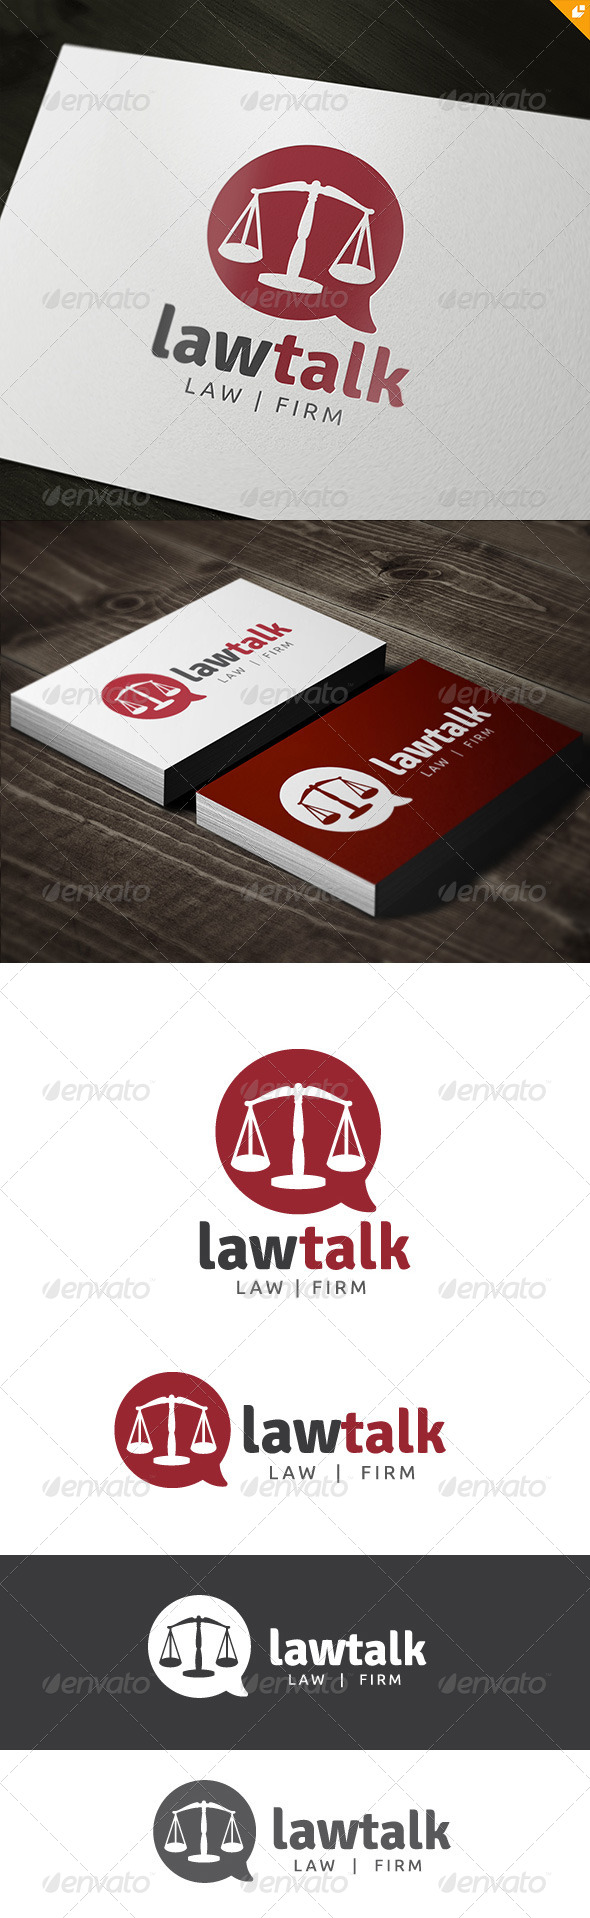 GraphicRiver Law Talk Law Firm 8369714